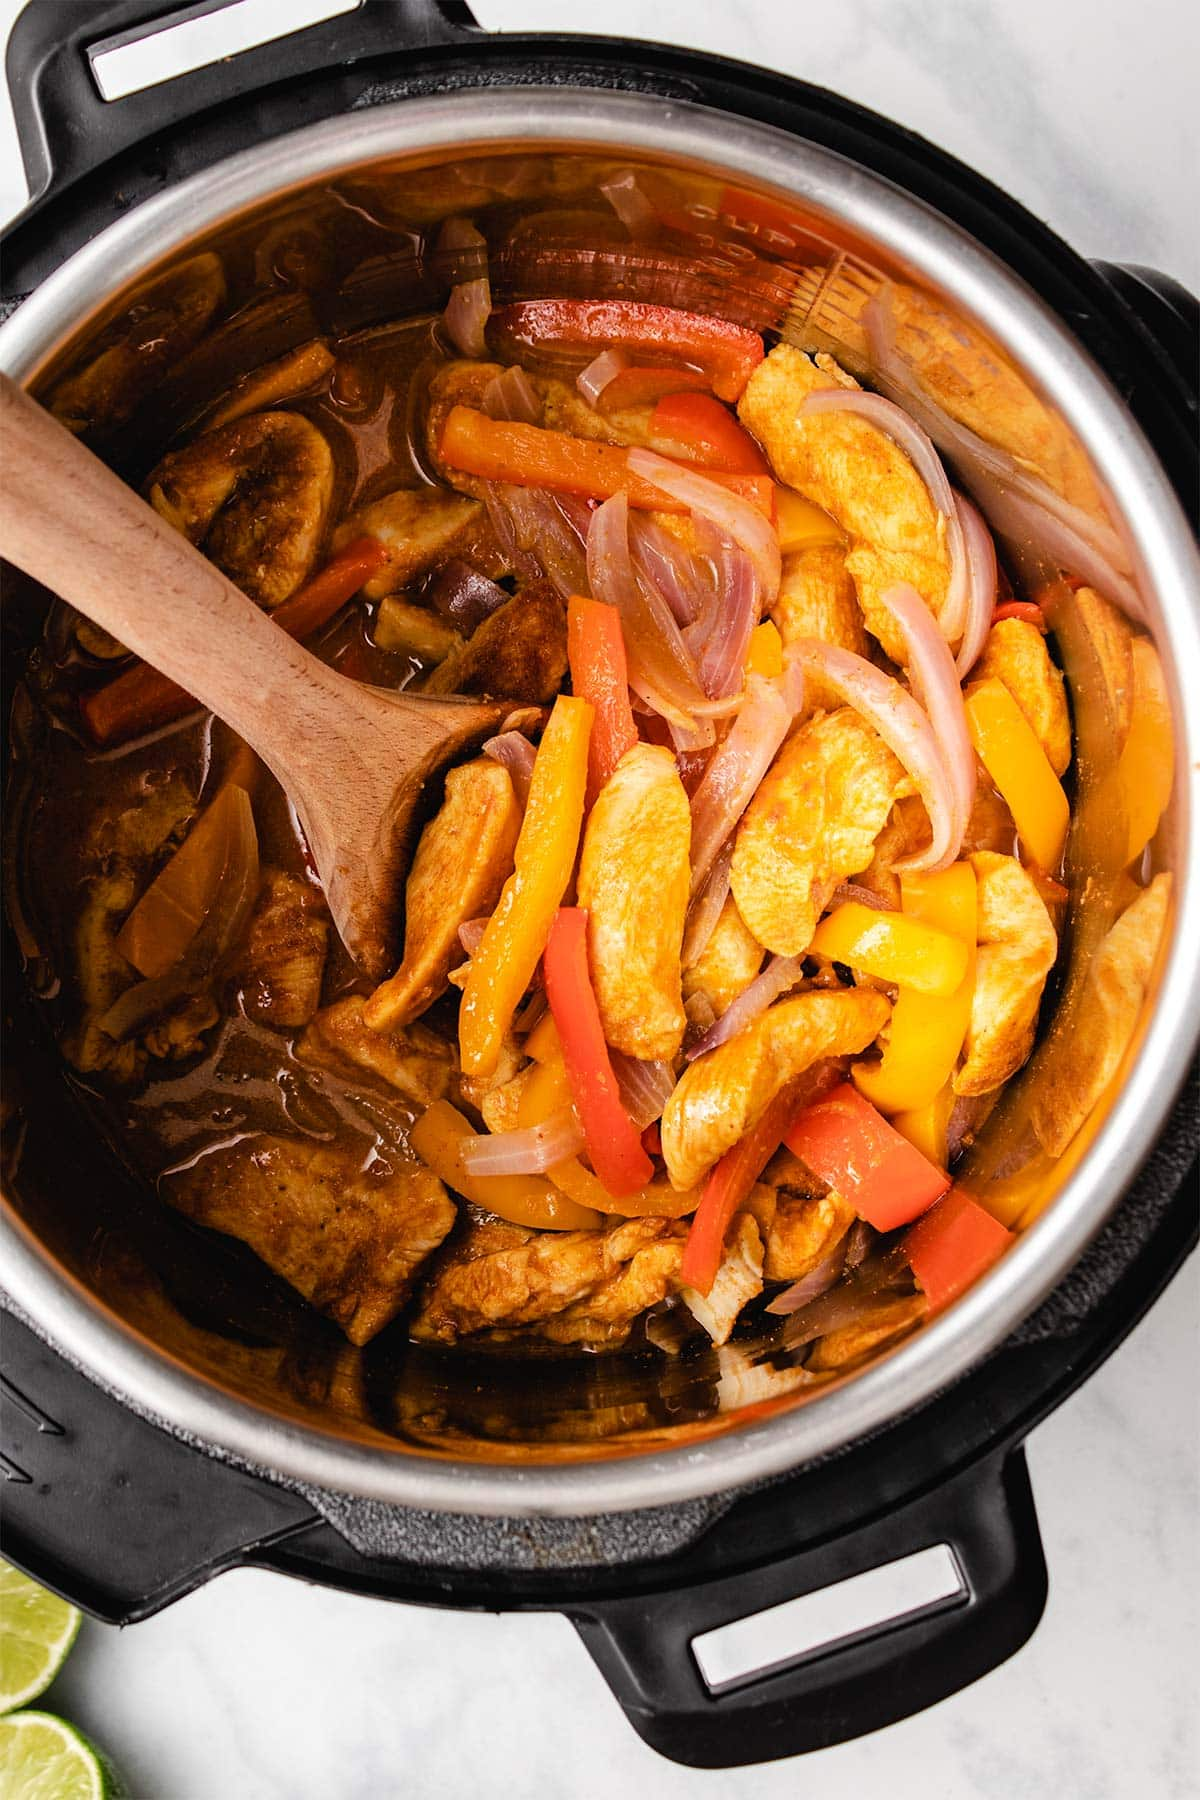 Chicken fajita filling in an Instant Pot being scooped with a wooden spoon.